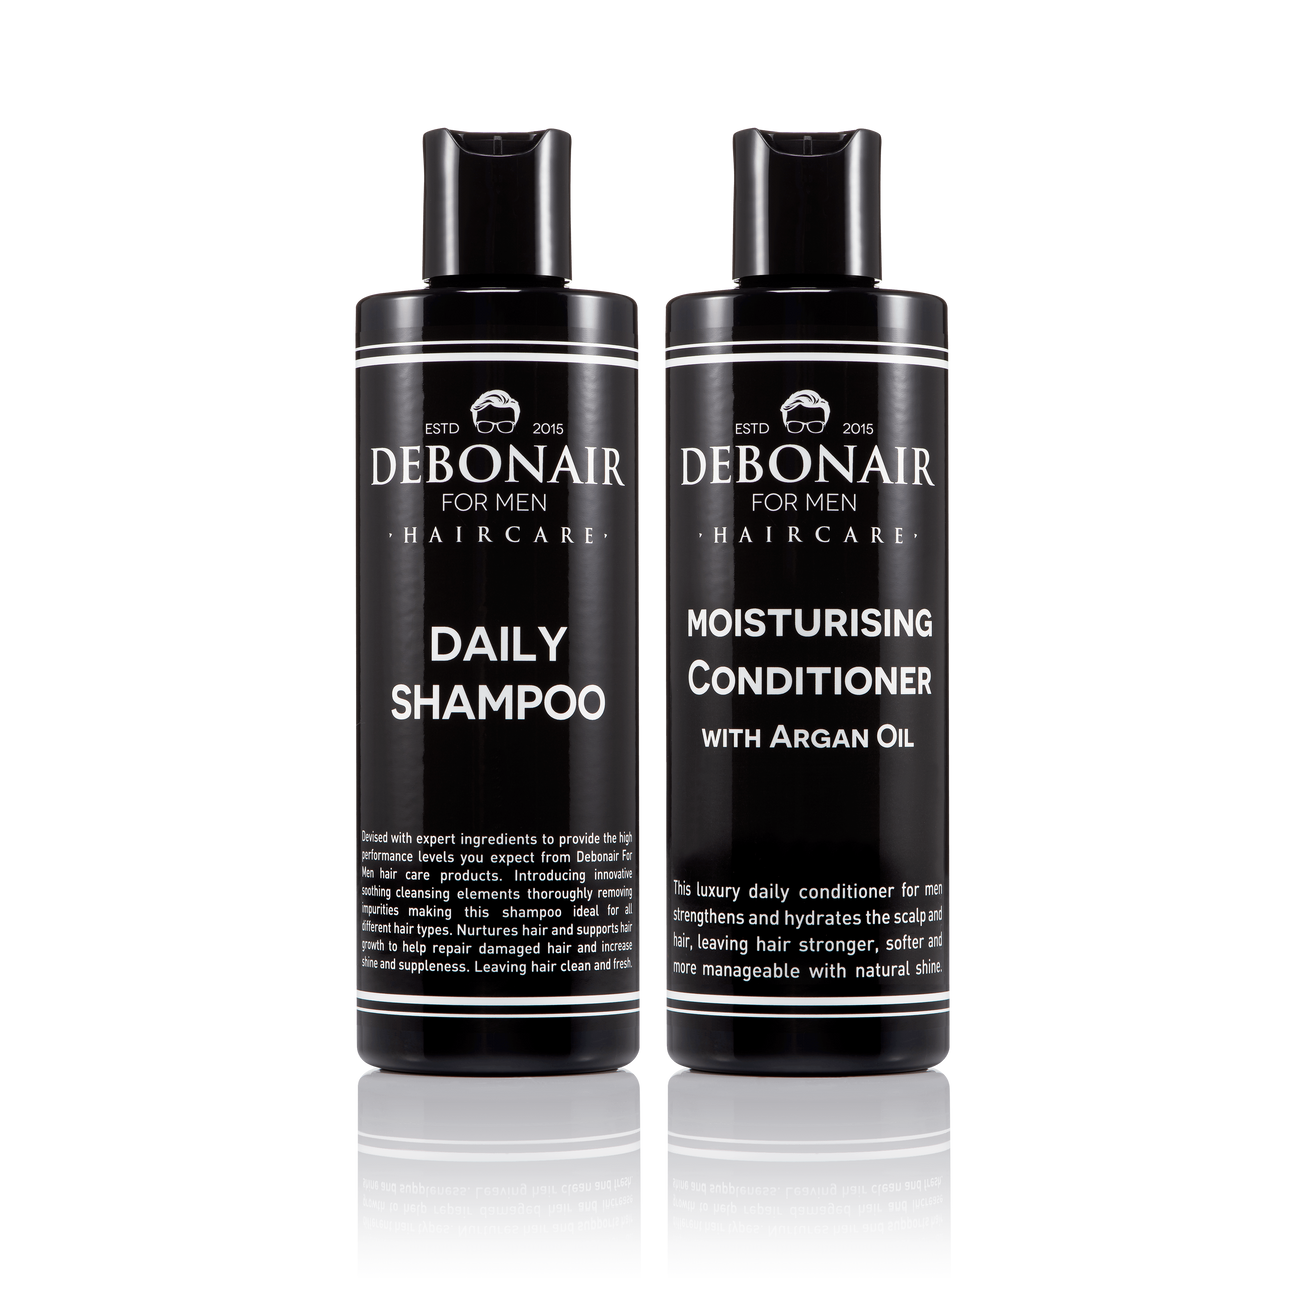 Daily Shampoo and Moisturising Conditioner - Debonair for Men